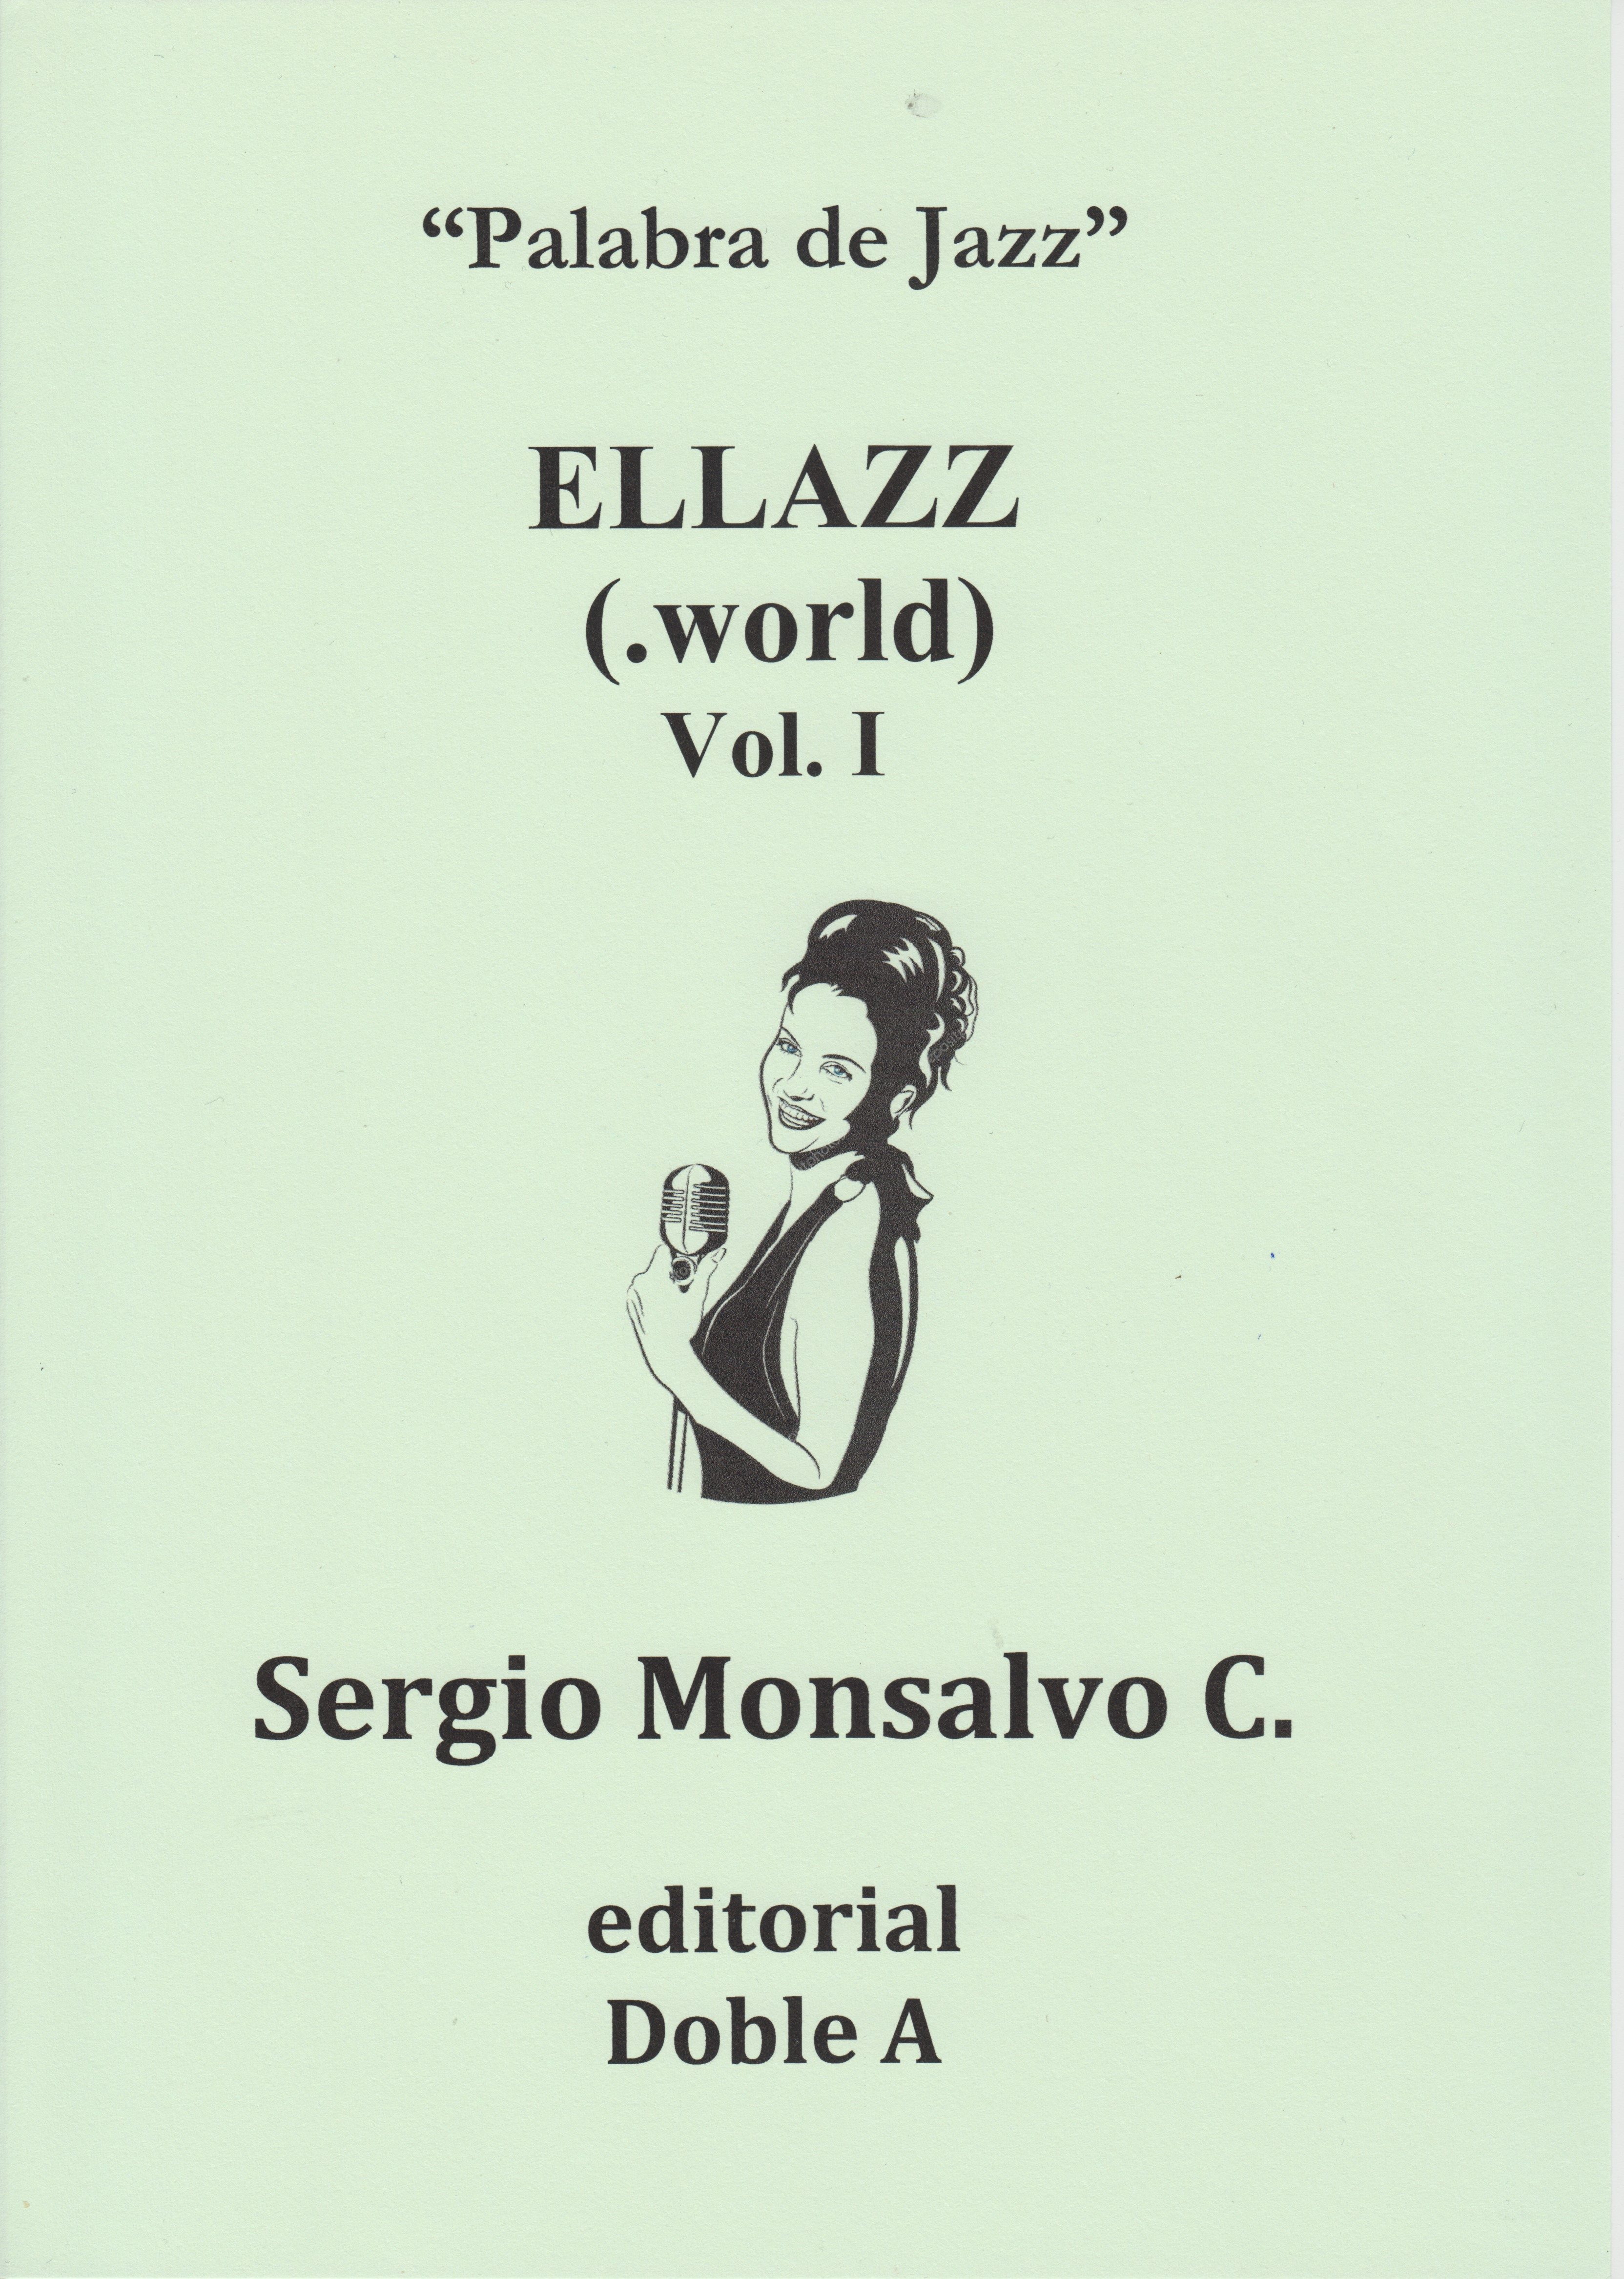 ELLAZZ (.WORLD) VOL. I (PORTADA)